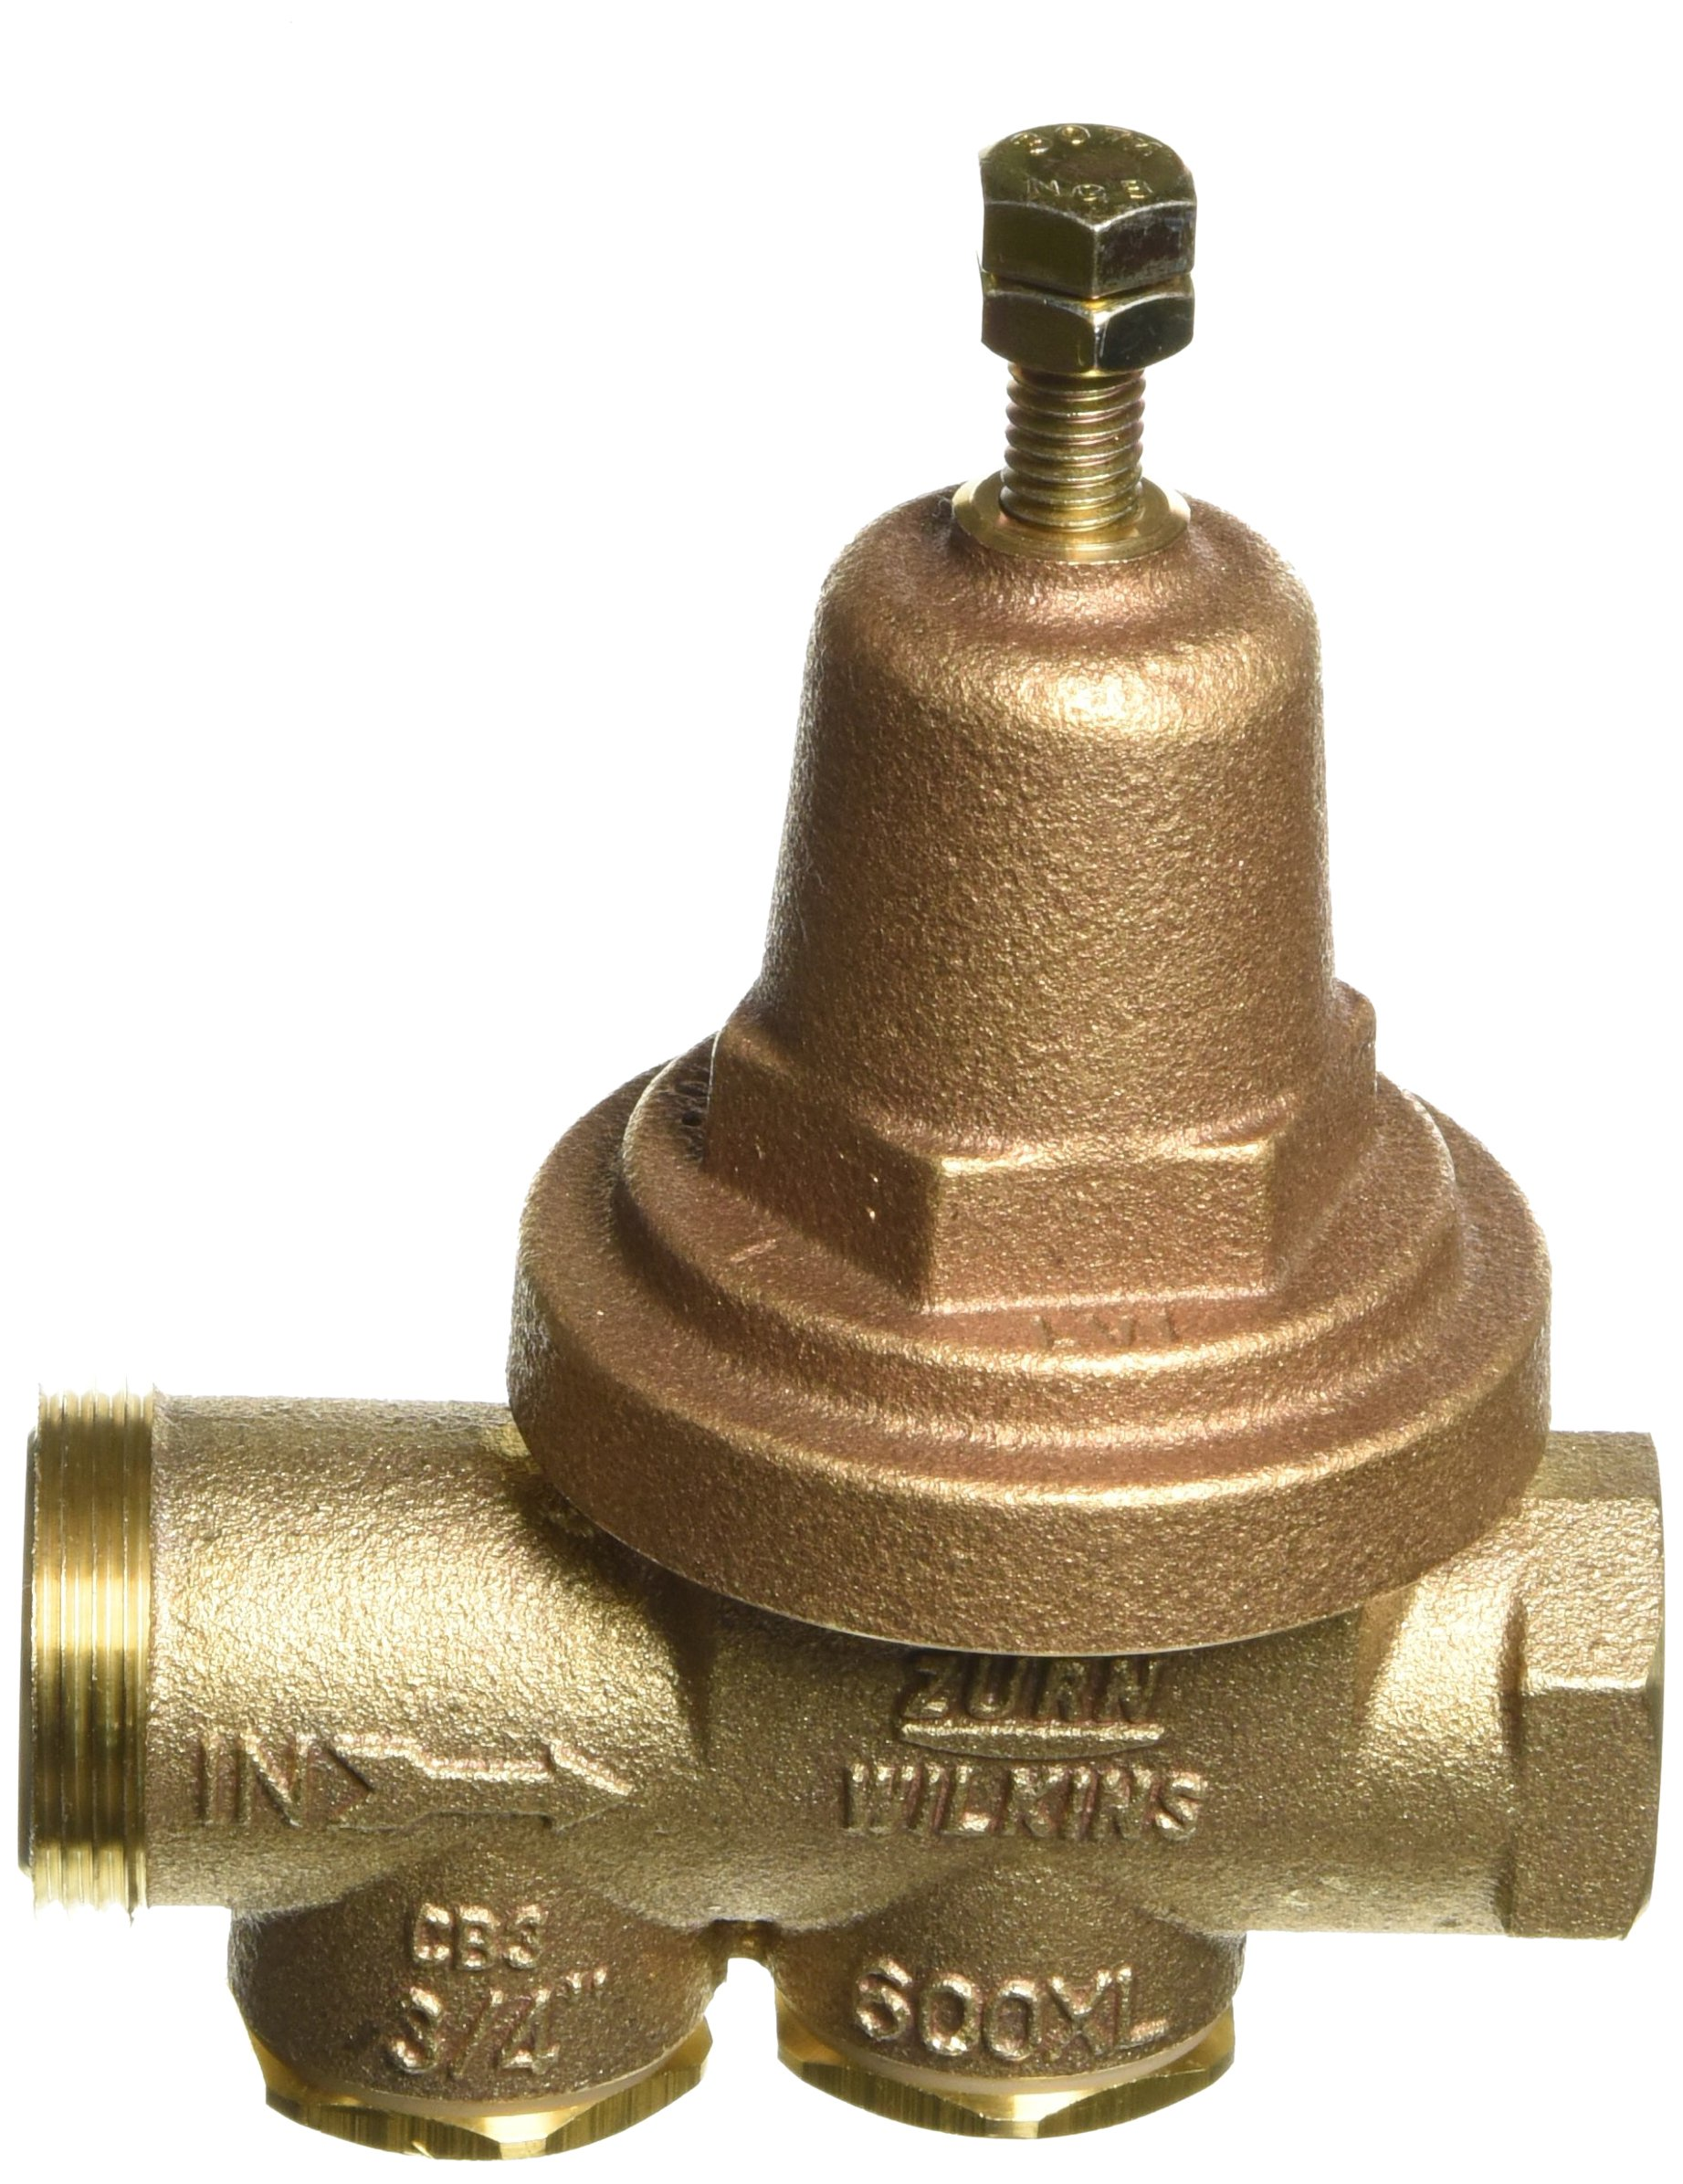 Zurn Wilkins Model 34-600XL 3/4'' Water Pressure Reducing Brass Valve with Integral By-pass Check Valve and Strainer, FNPT Union x FNPT, Lead Free by Wilkins (Image #3)